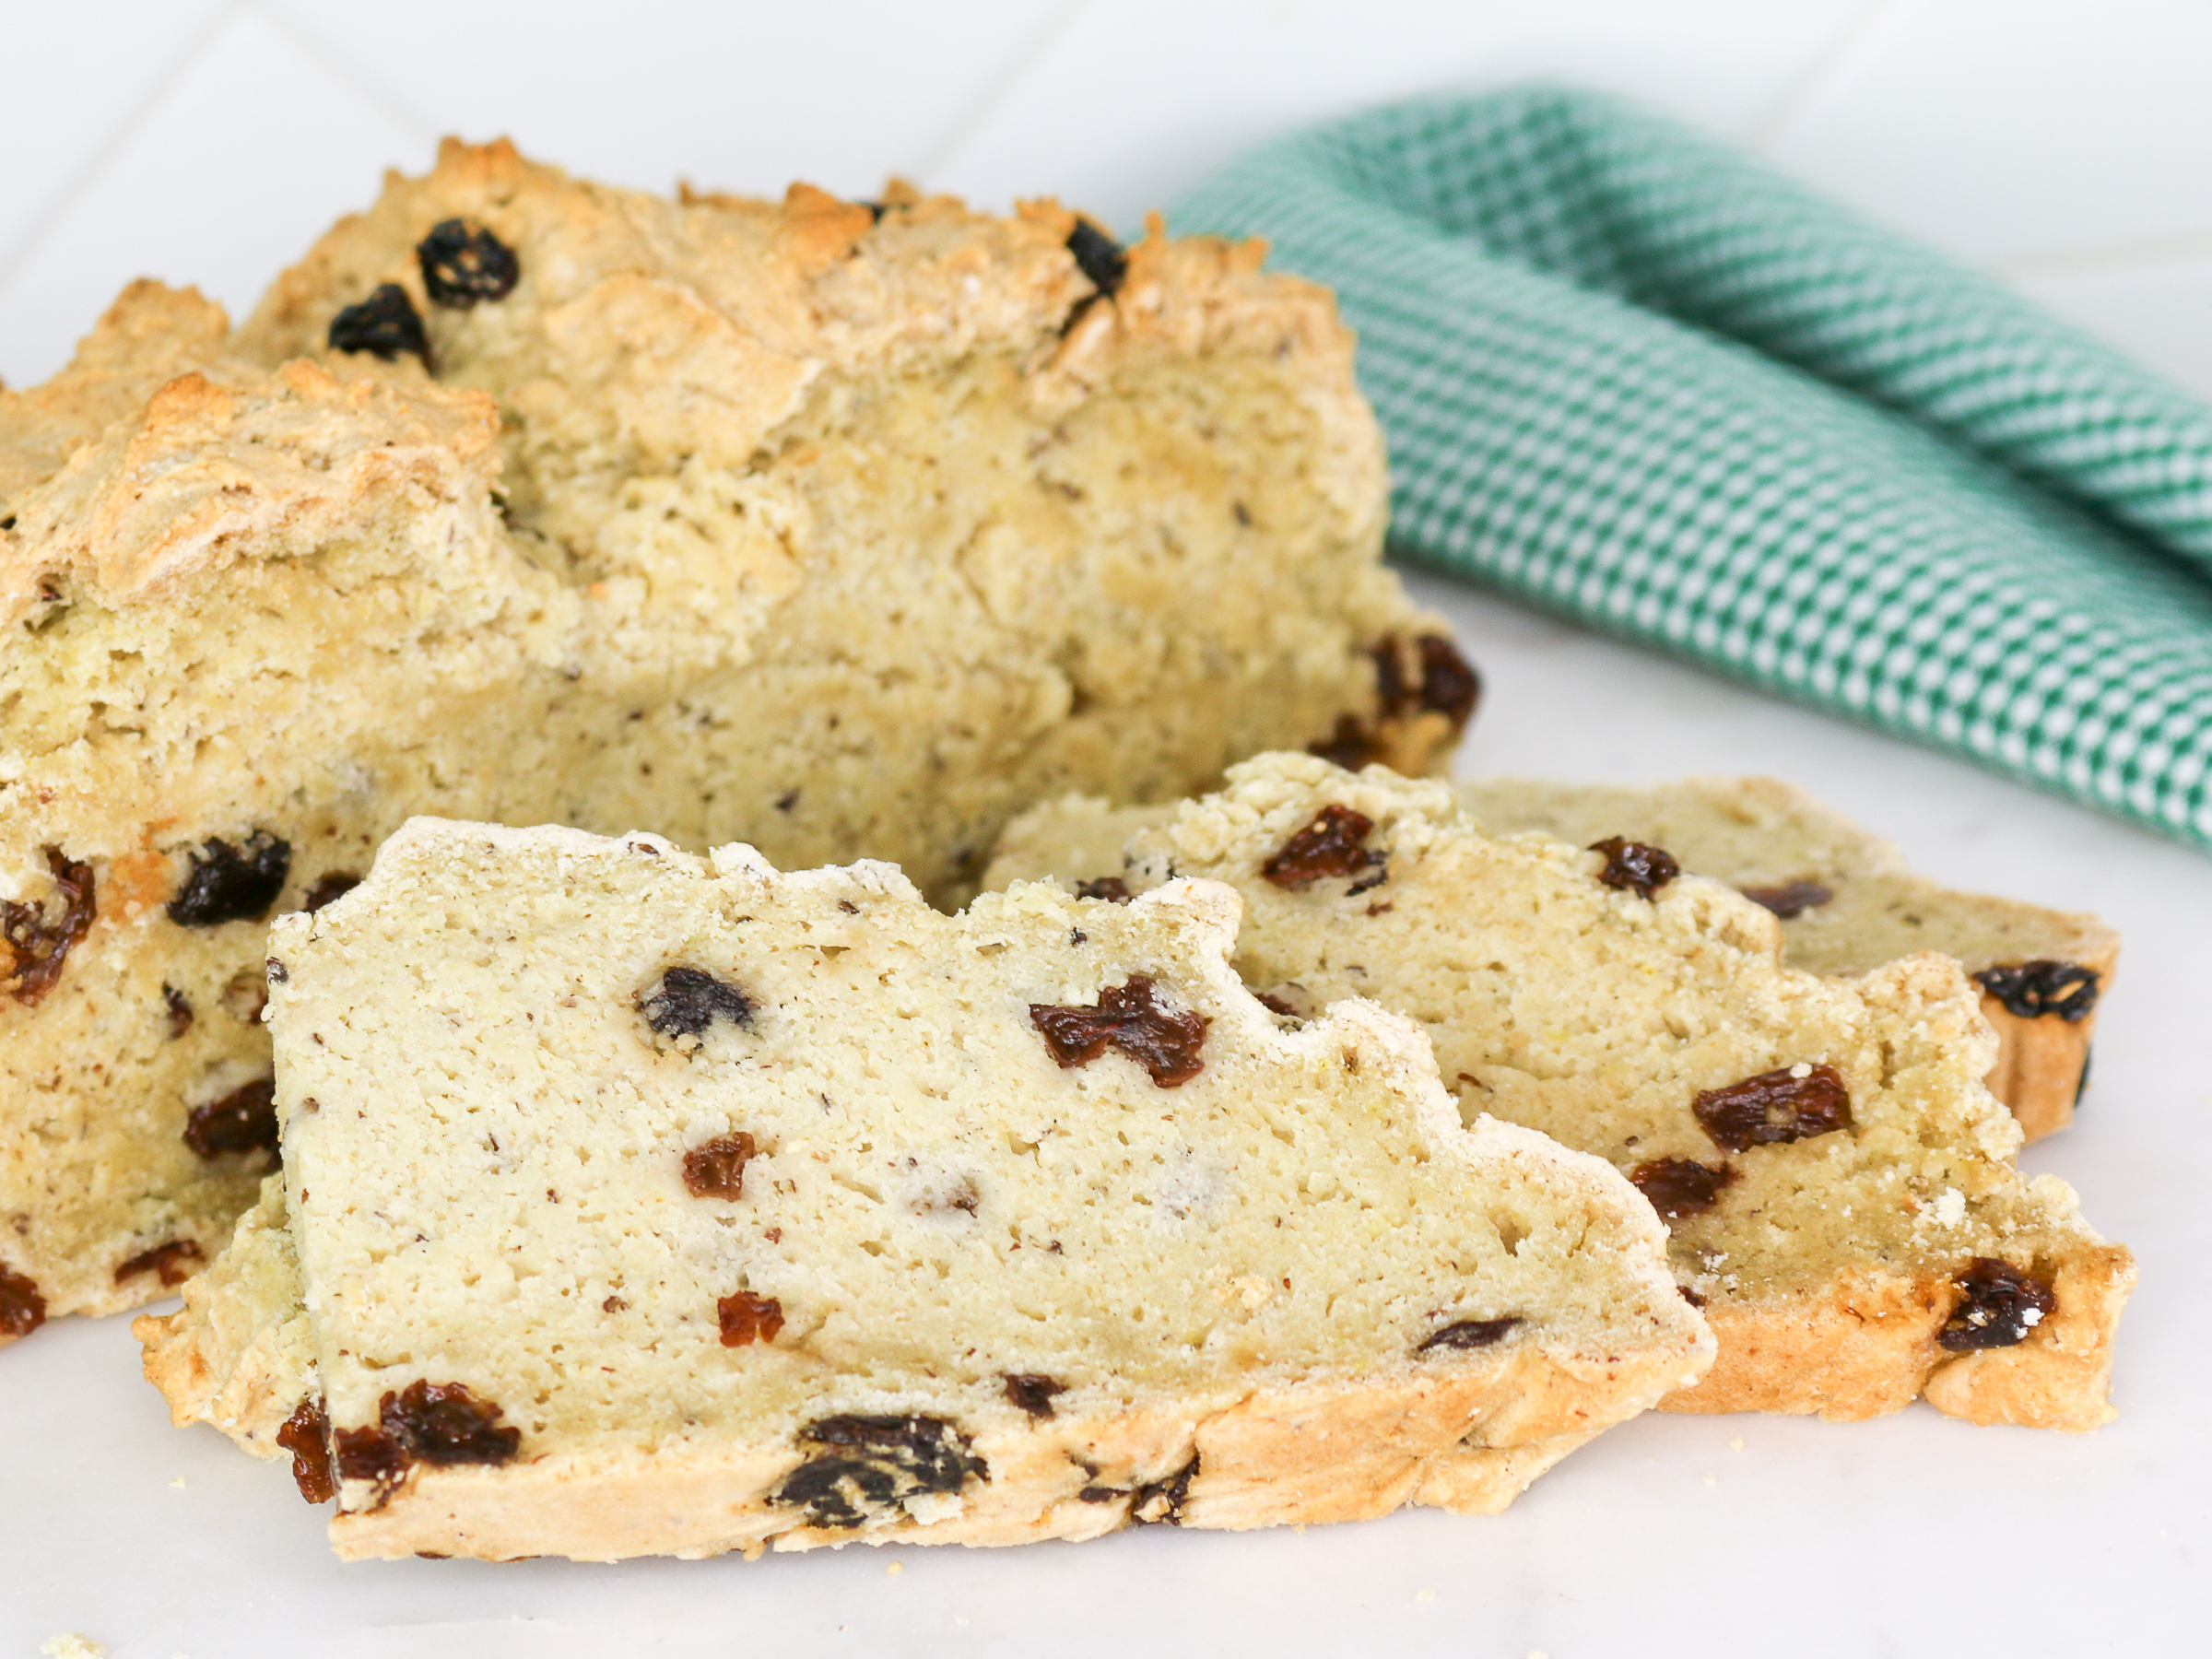 Sliced Irish soda bread on white plate with green and white naplin